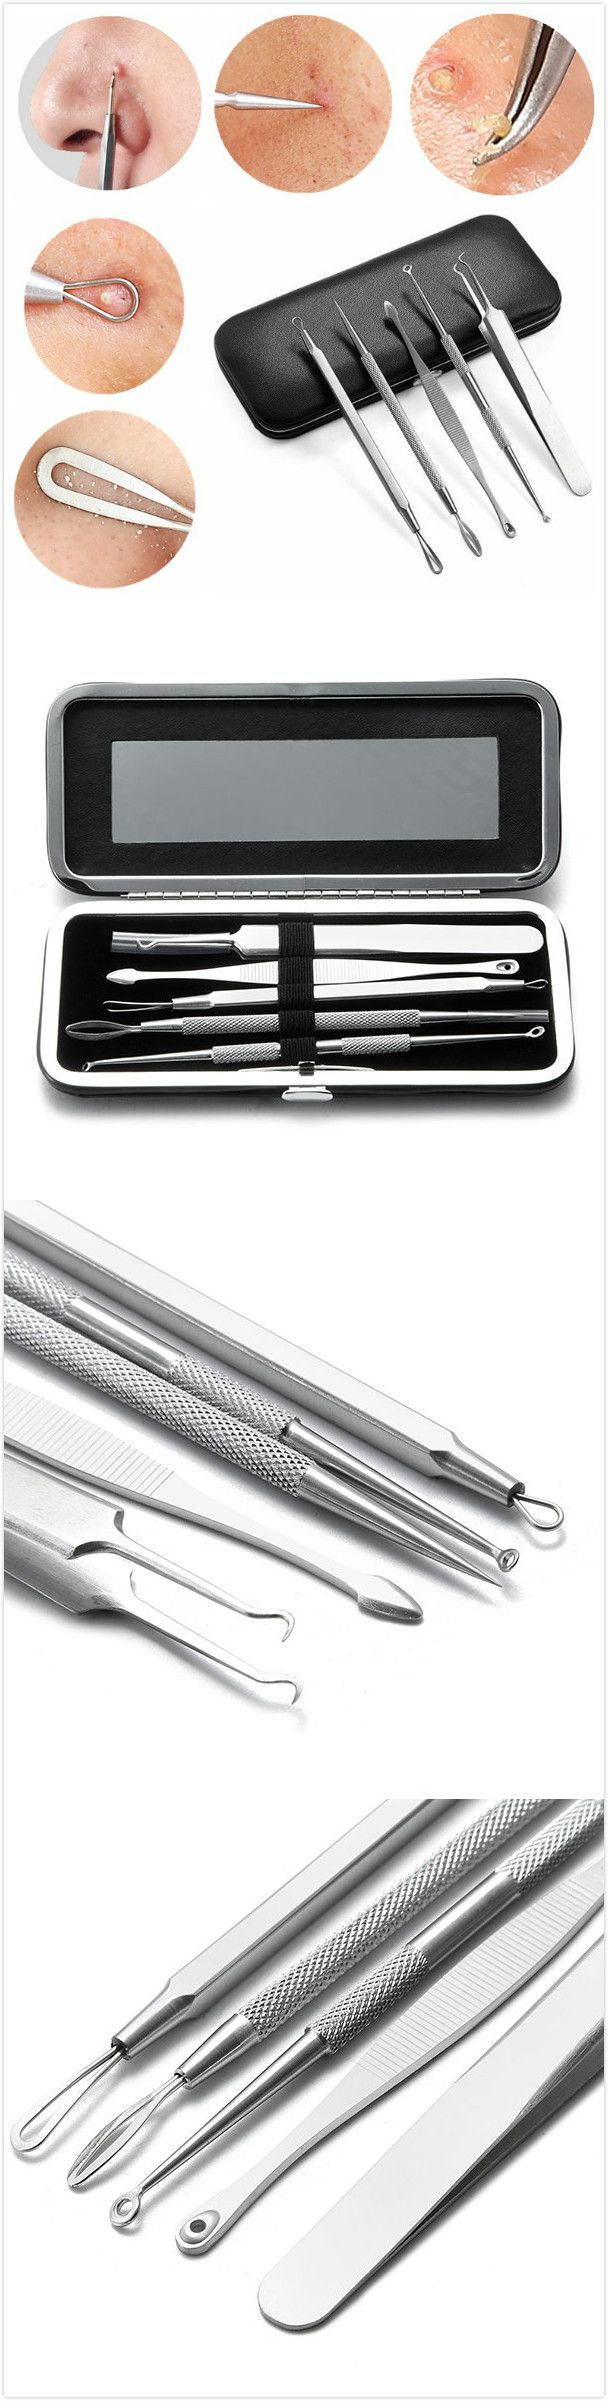 [$9.69] 5Pcs Blackhead Acne Blemish Pimple Remover Extractor Professional Tool Stainless Steel Kit